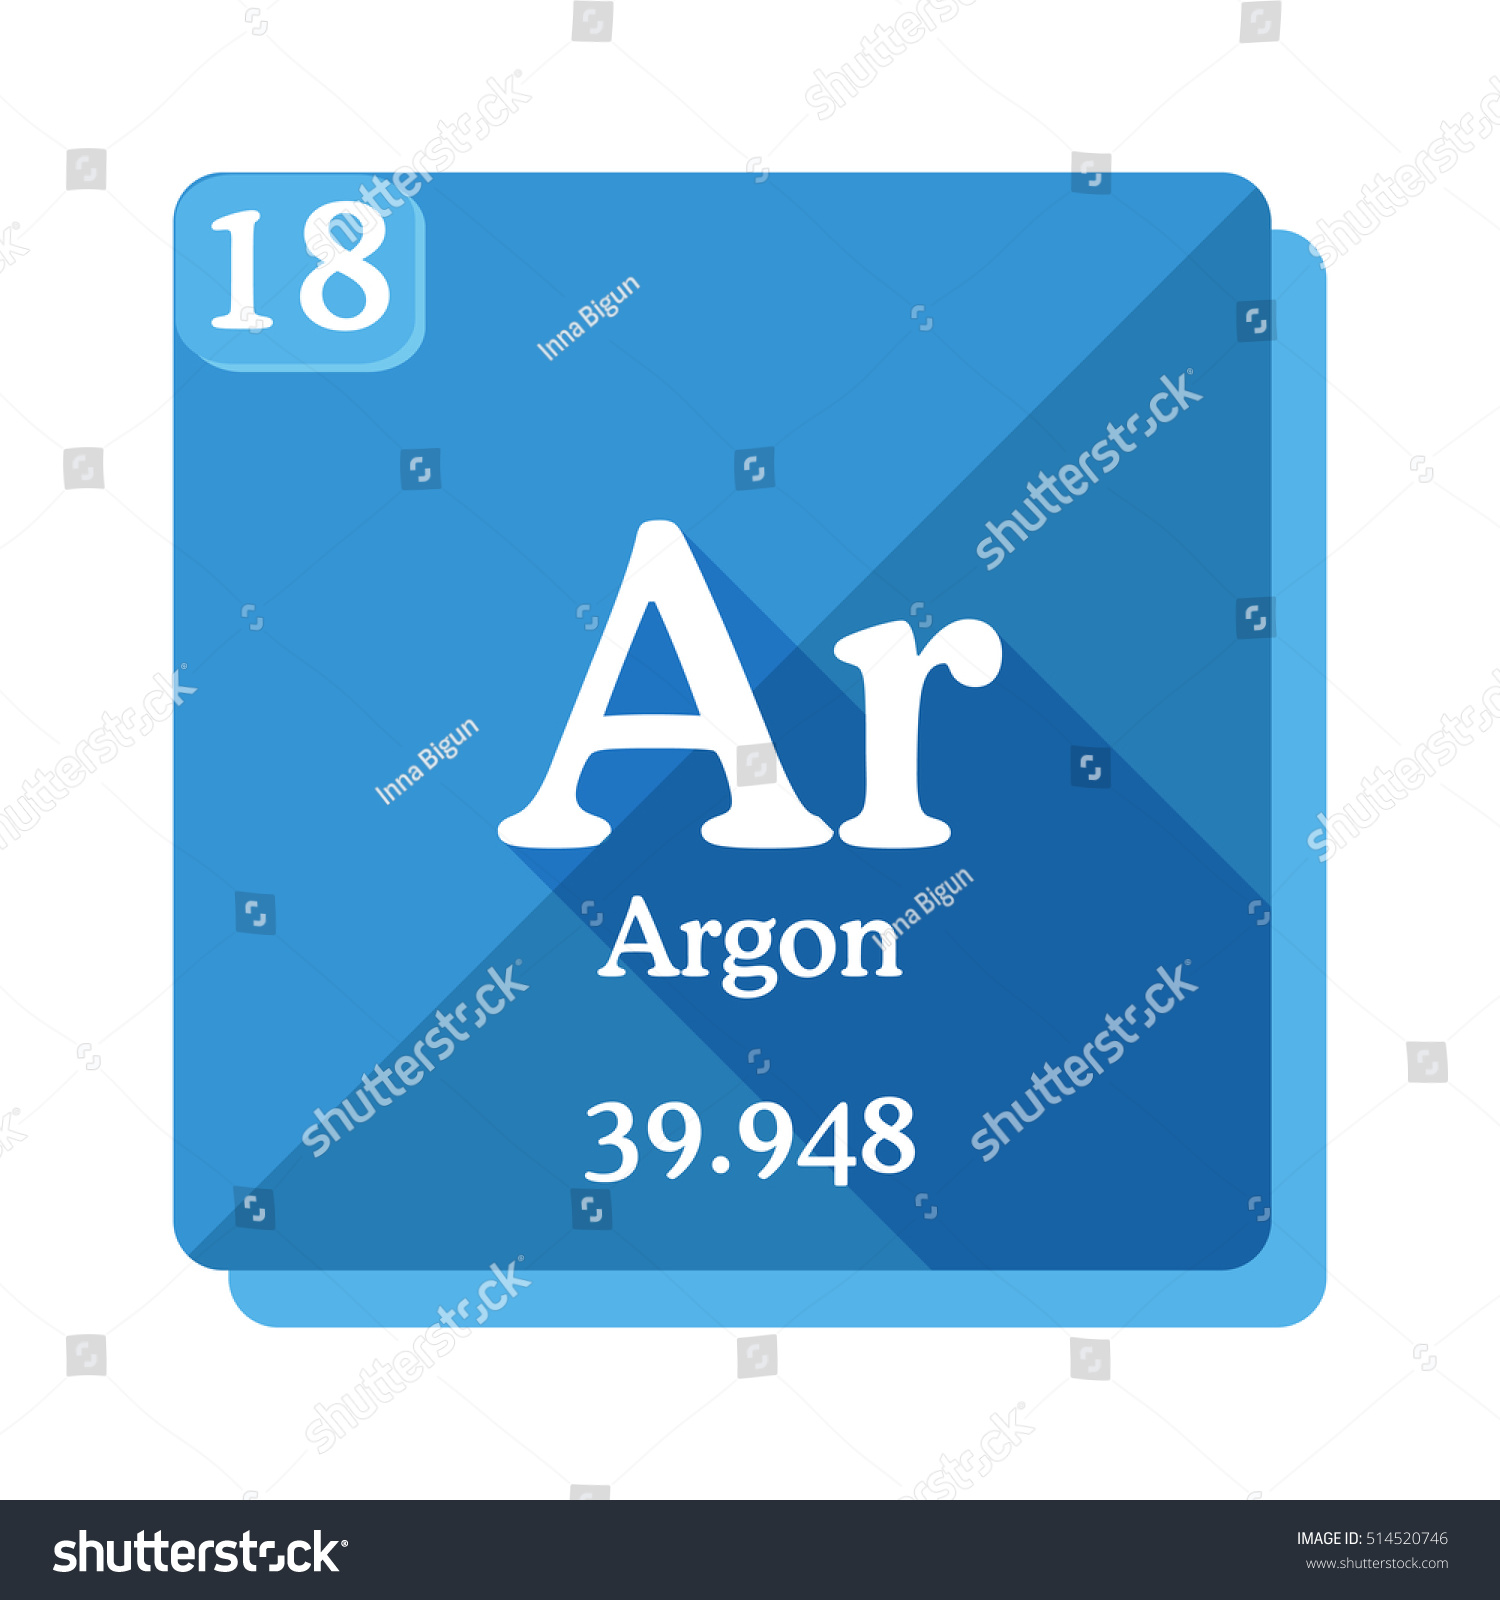 Argon ar element periodic table flat stock vector 514520746 argon ar element of the periodic table flat icon with long shadow gamestrikefo Choice Image